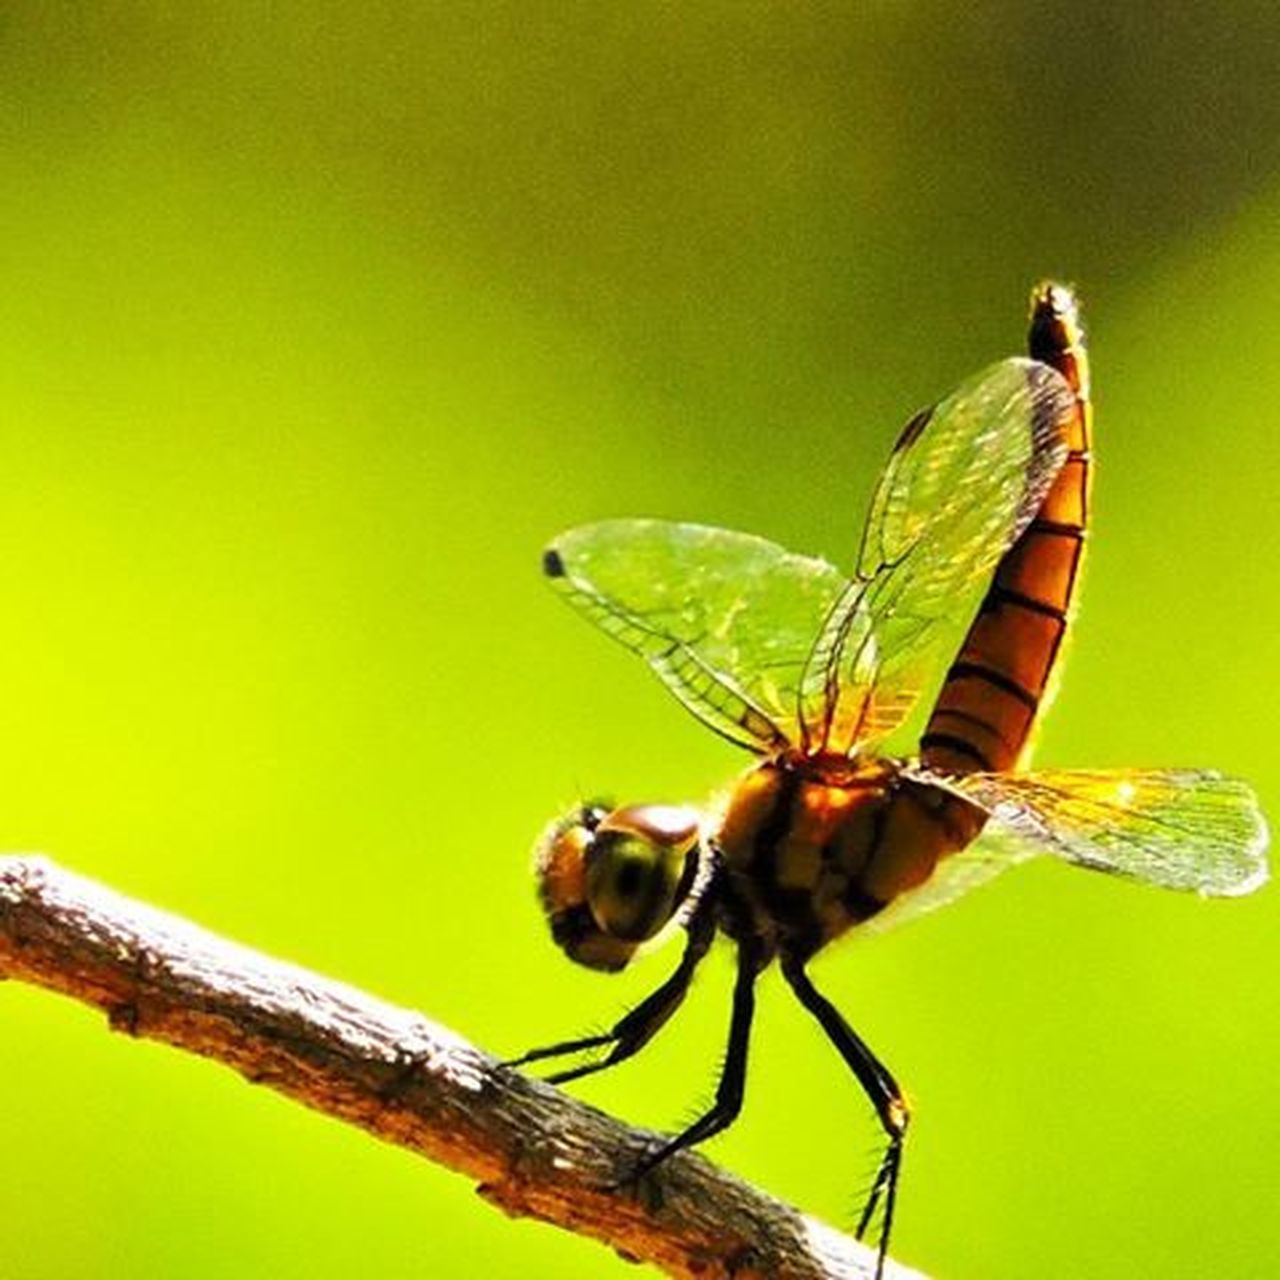 Macro mode F / 5.6 1/400 350mm Iso 800 Photography Nikon MyClick Dragonfly Green Happy Instalove Instamood Instagraphy Instagram PhotographyLove Kottayam .